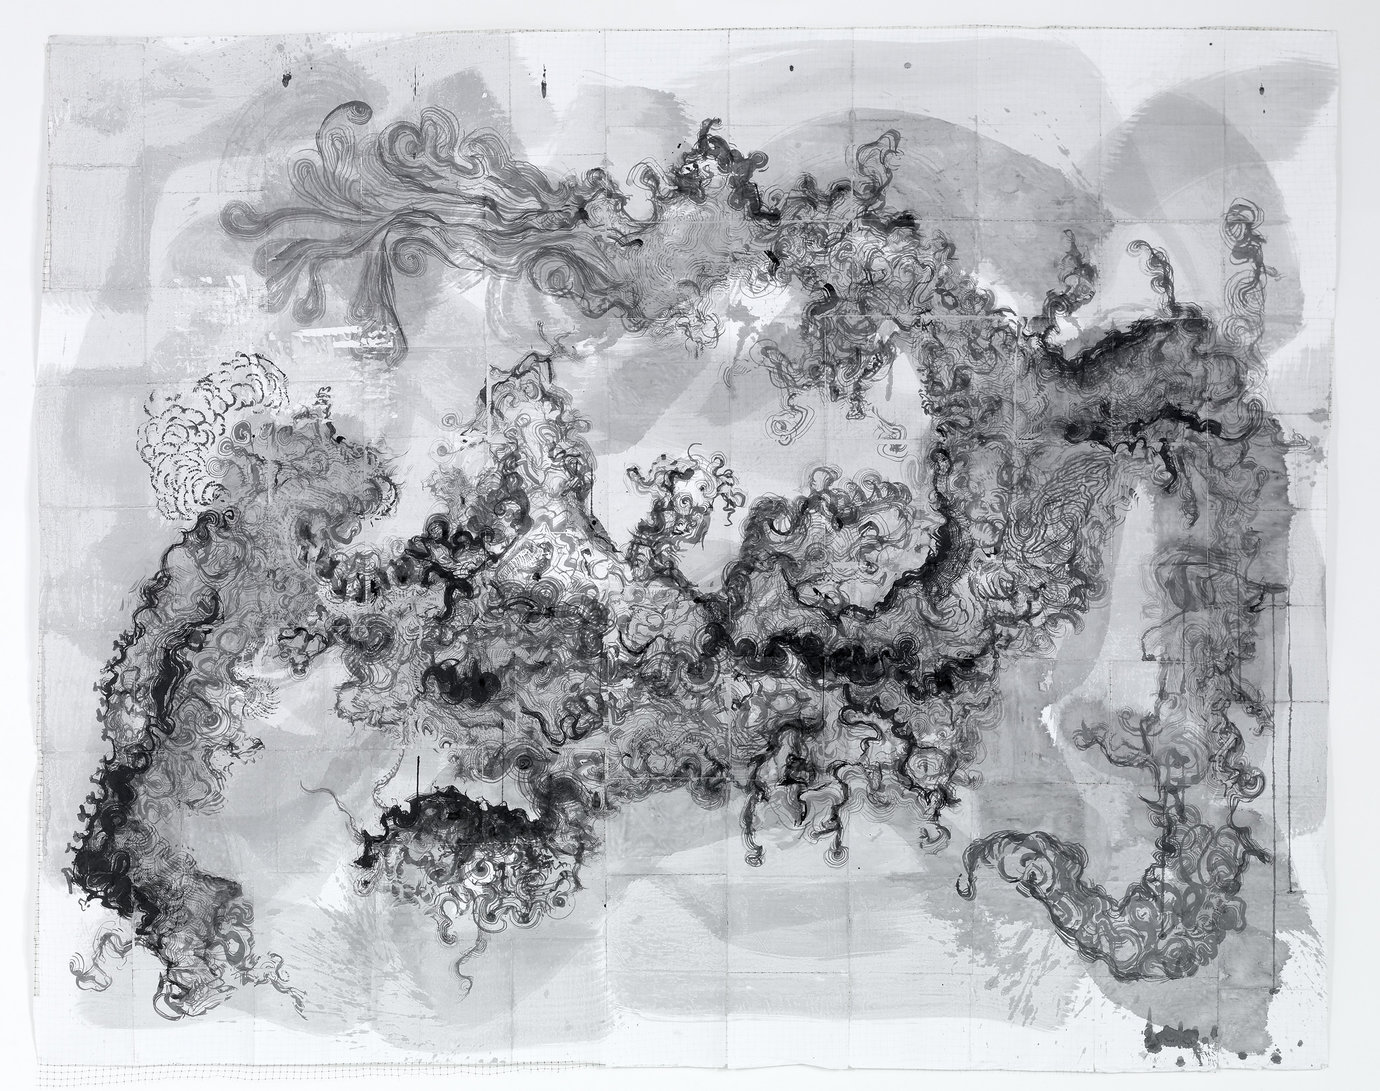 ", 2007. Ink on paper over netting, 7' 8"" x 9' 4"" (233.7 cm x 284.5 cm)."